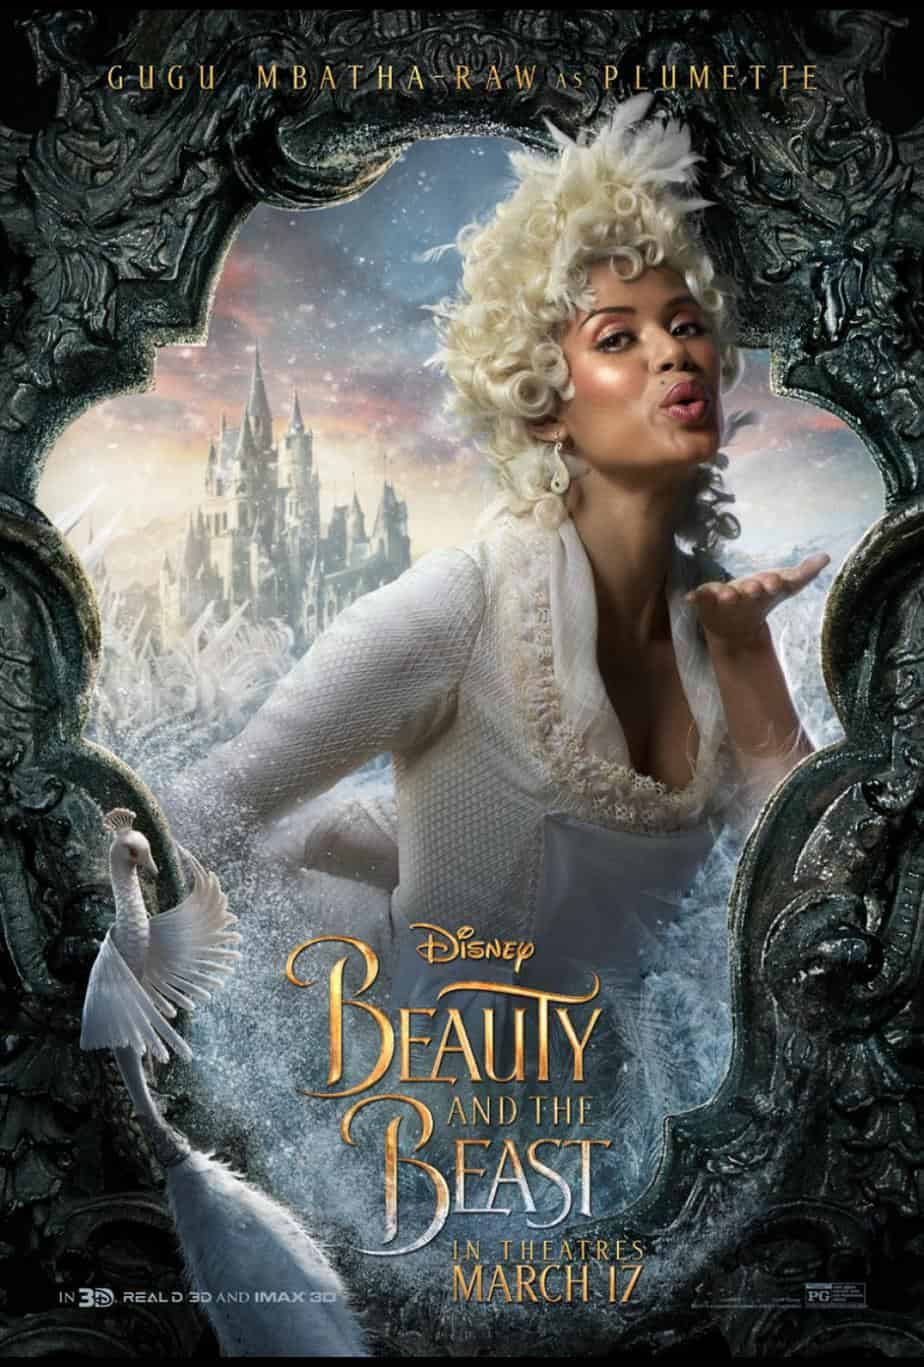 Beauty and the Beast - Synetic TheaterSynetic Theater